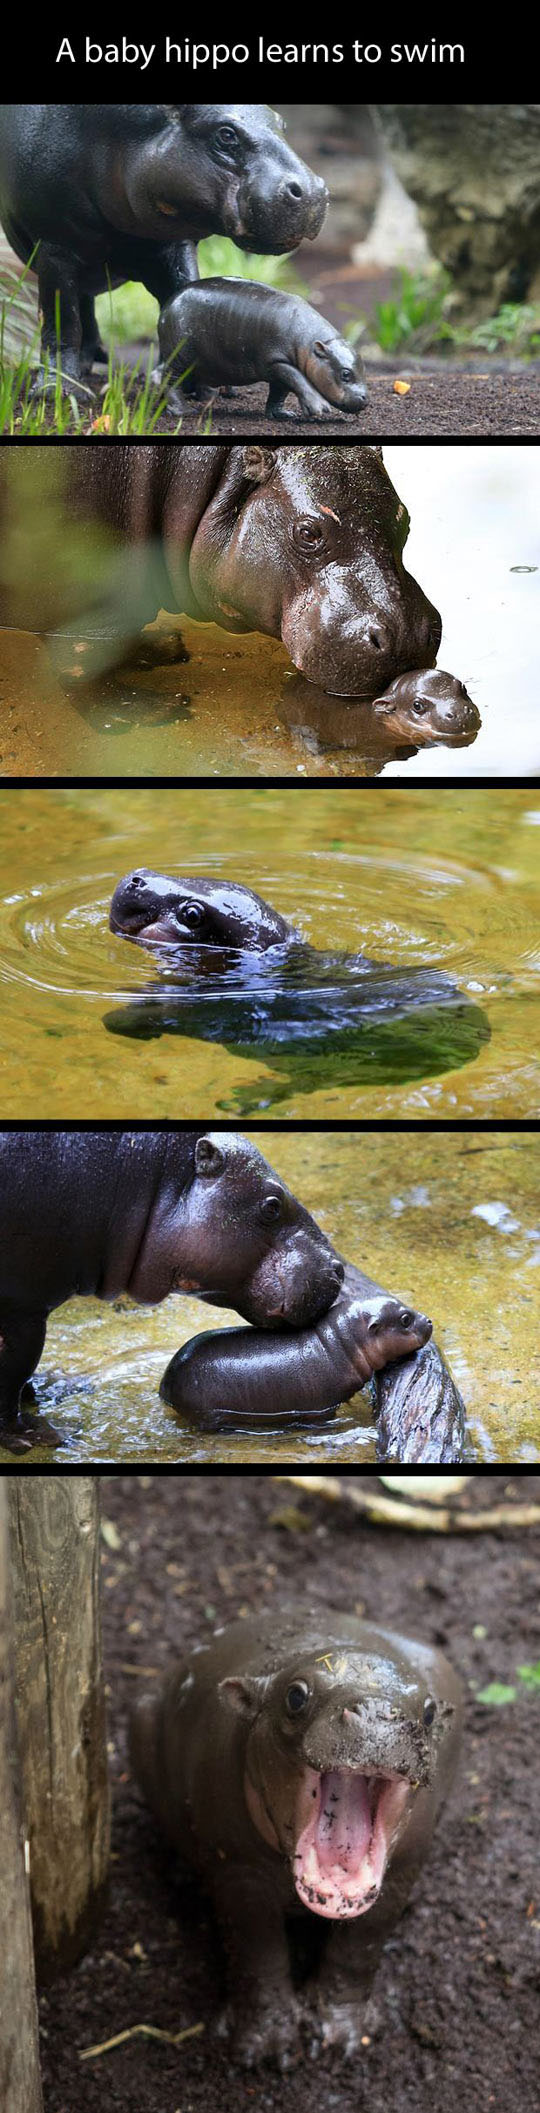 Baby Hippo Makes Me Happy